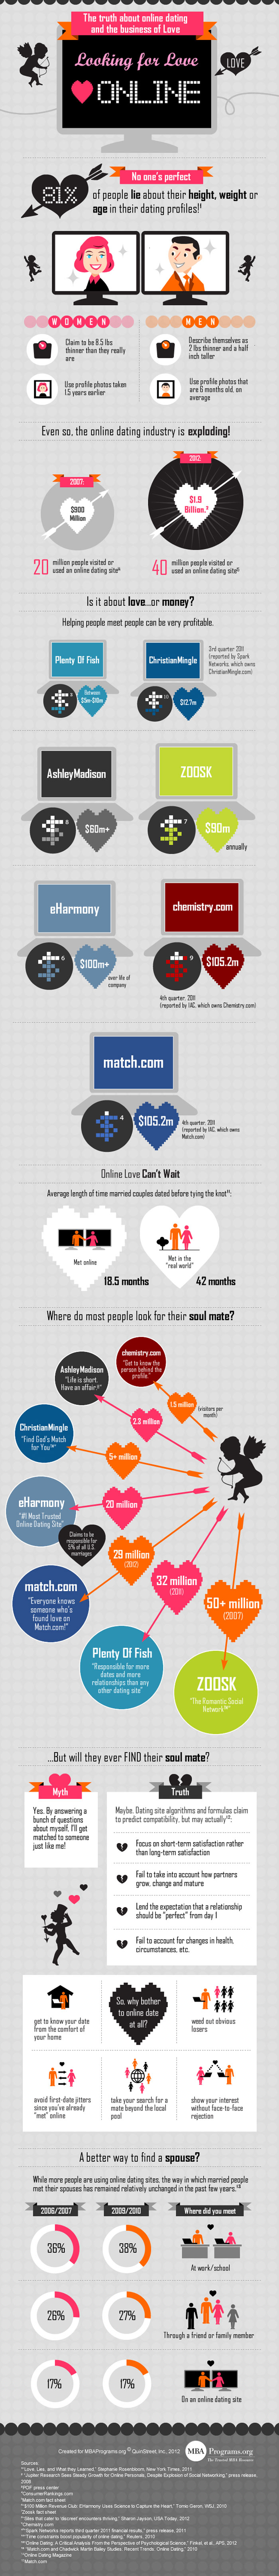 Online Dating Statistics 2012 Infographic